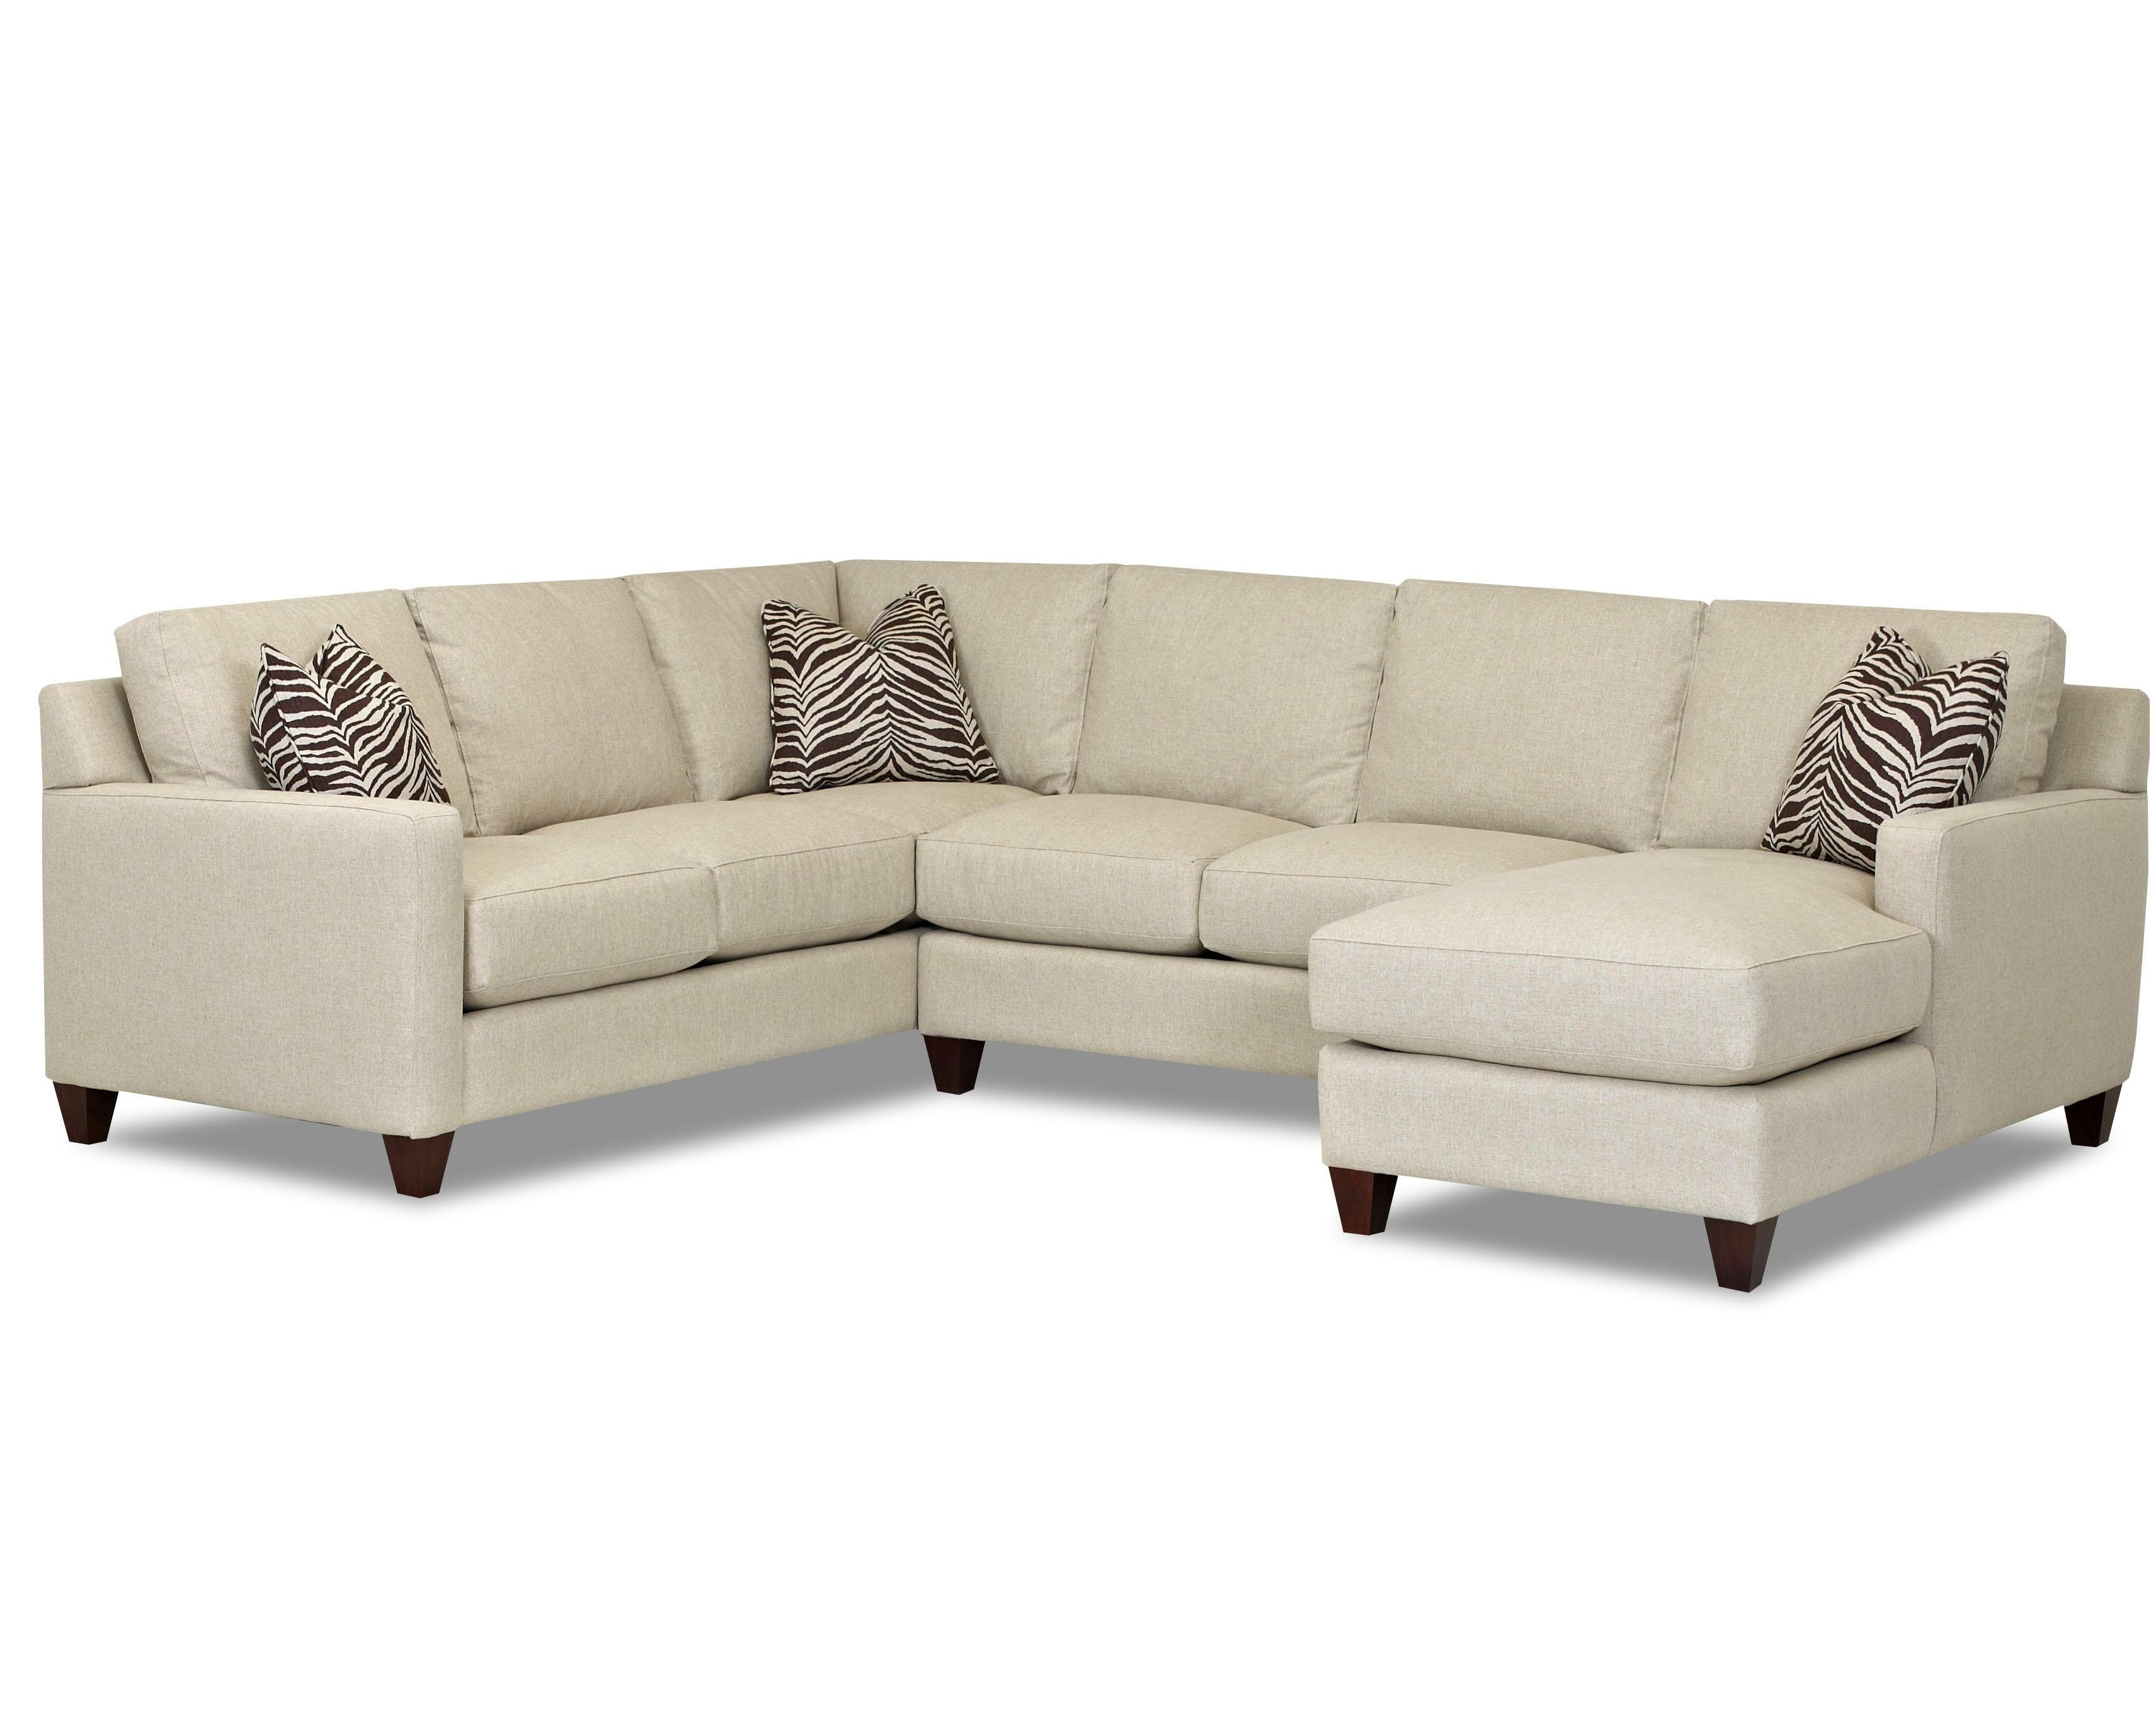 Contemporary Stationary Sectional With Track Arms, Left Side For Well Liked Left Facing Chaise Sectionals (View 13 of 15)